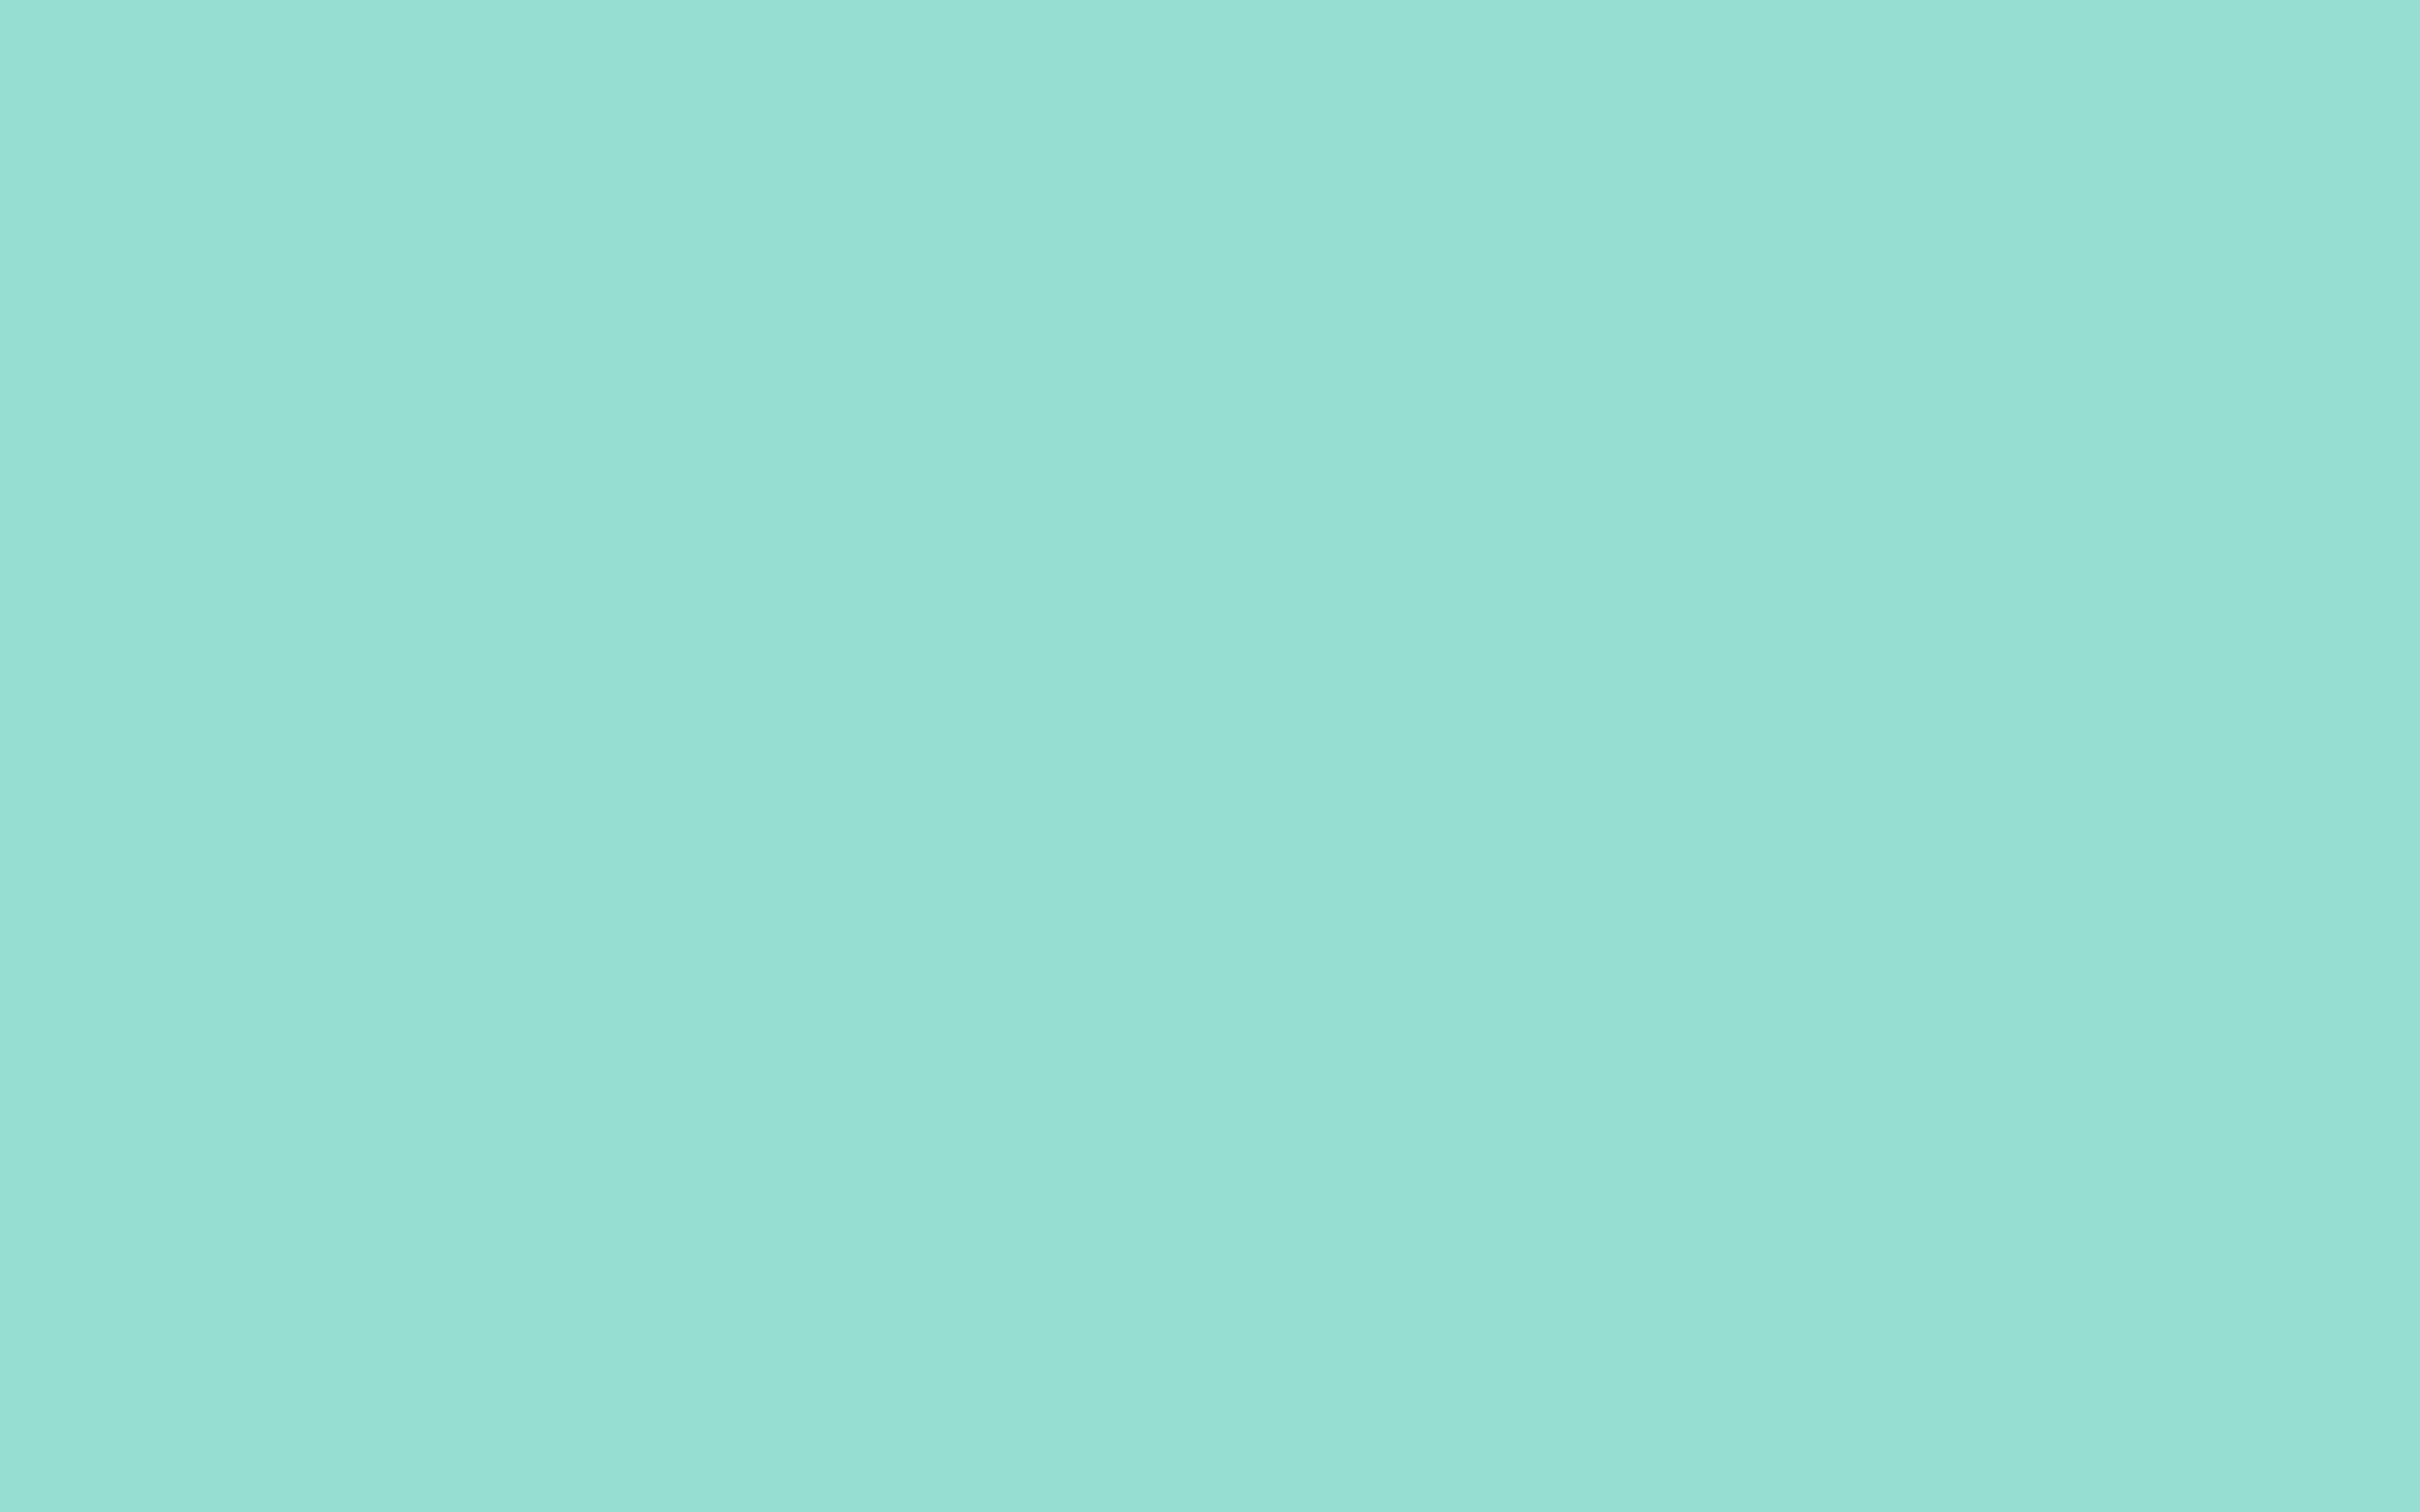 2560x1600 Pale Robin Egg Blue Solid Color Background